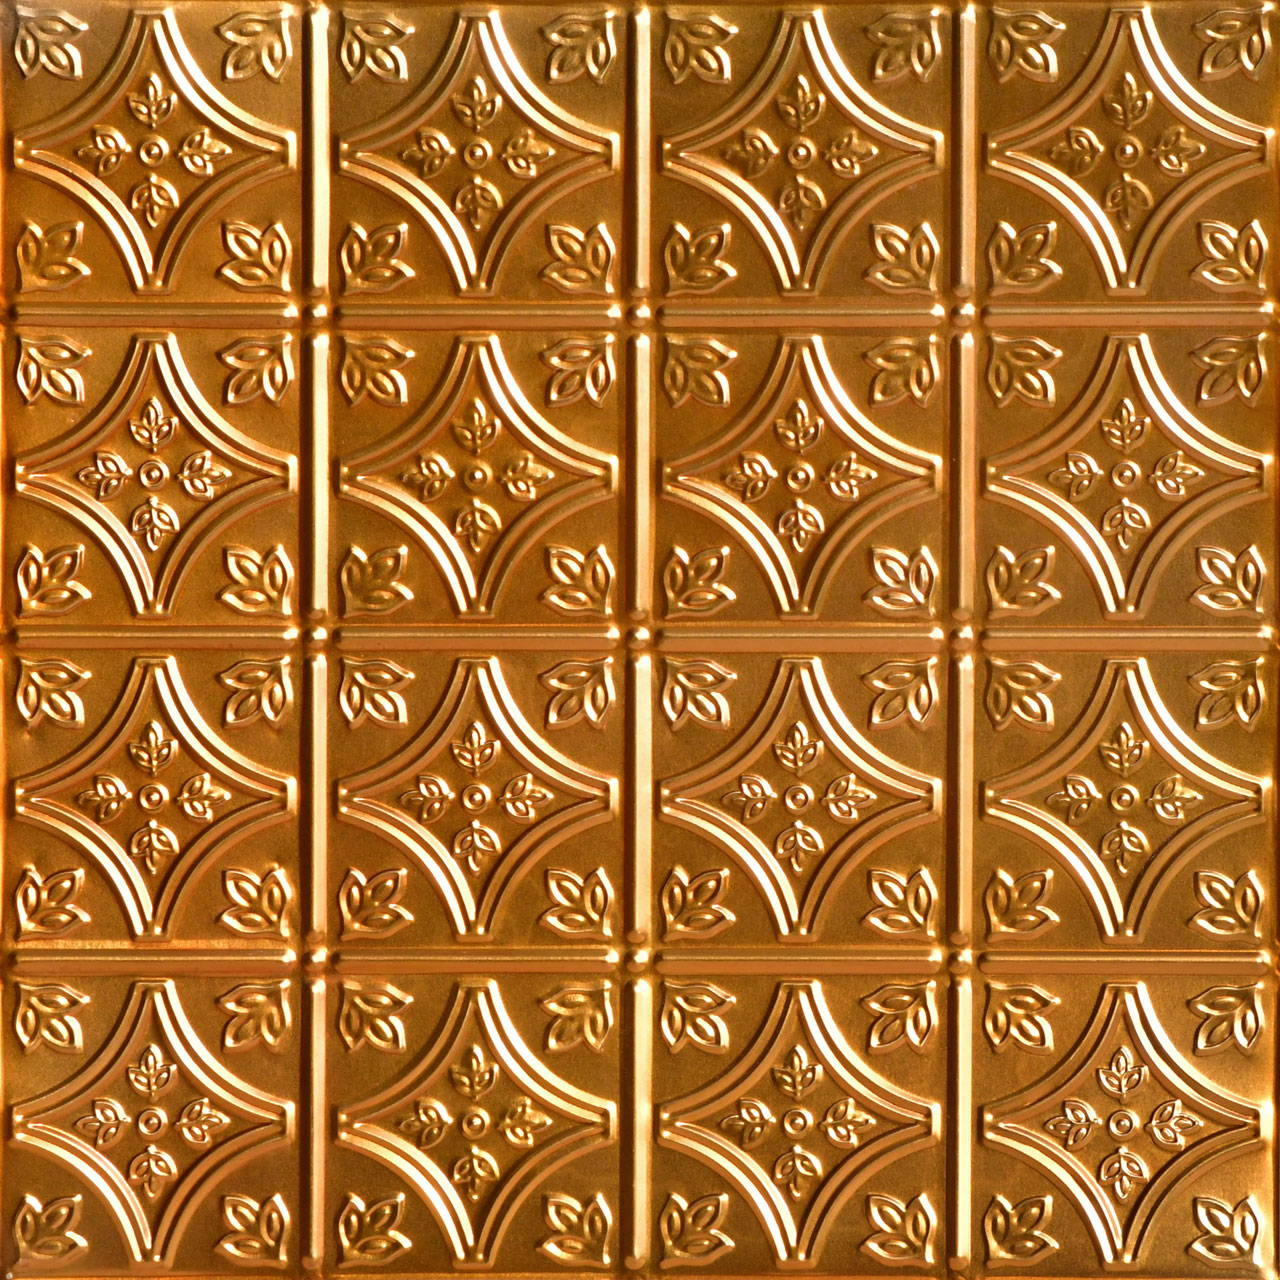 Tiny Tiptoe 2 ft x 2 ft Shanko - Wall and Ceiling Patterns - #209 - (Pack of 12) - Lincoln Copper